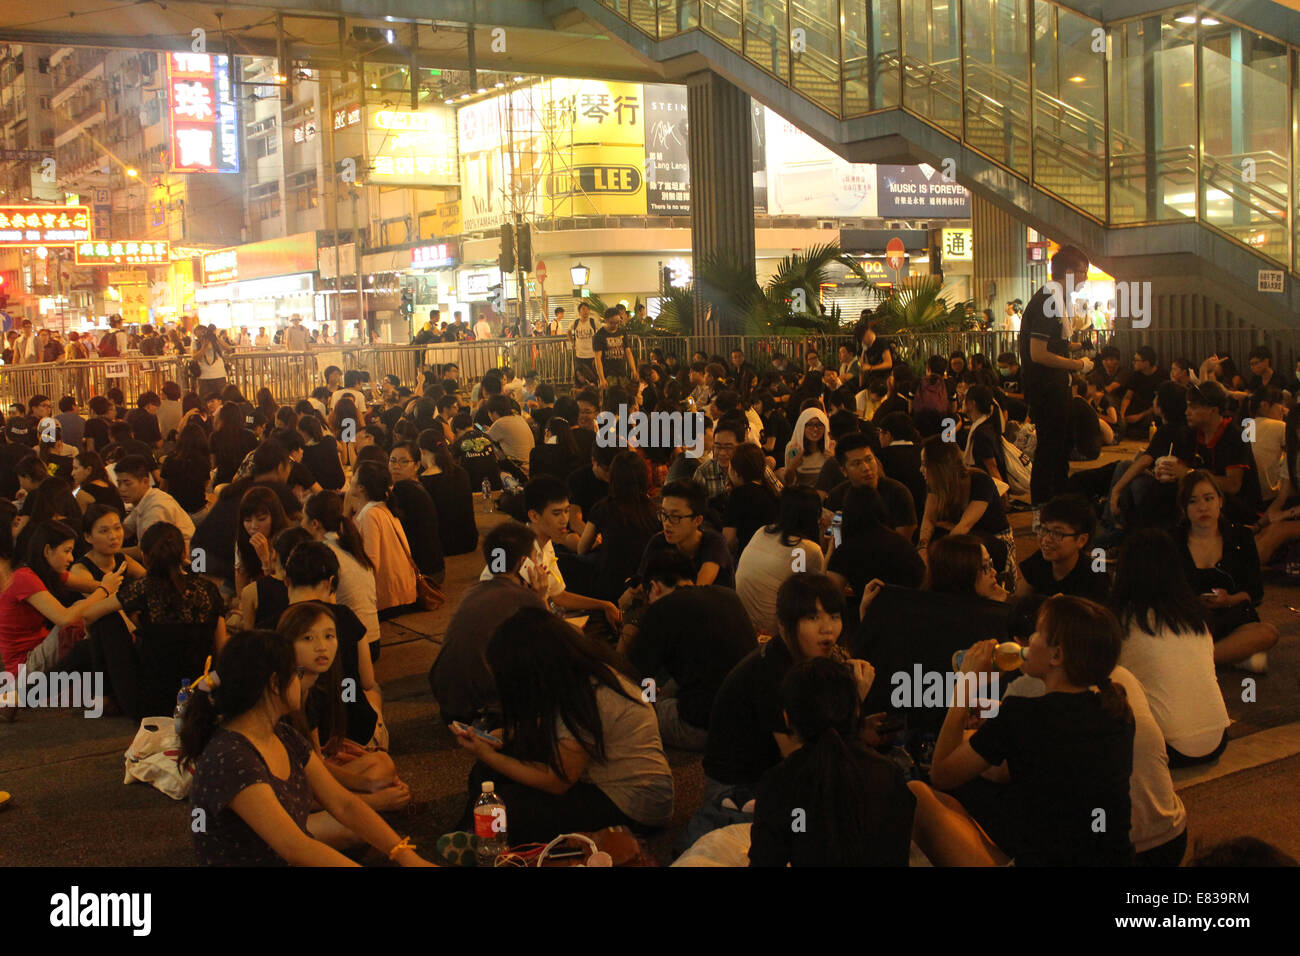 Hong Kong, China. 29th Sept, 2014. Hong Kong Protests: Pro-democracy activists block Hennessy Road in the shopping - Stock Image